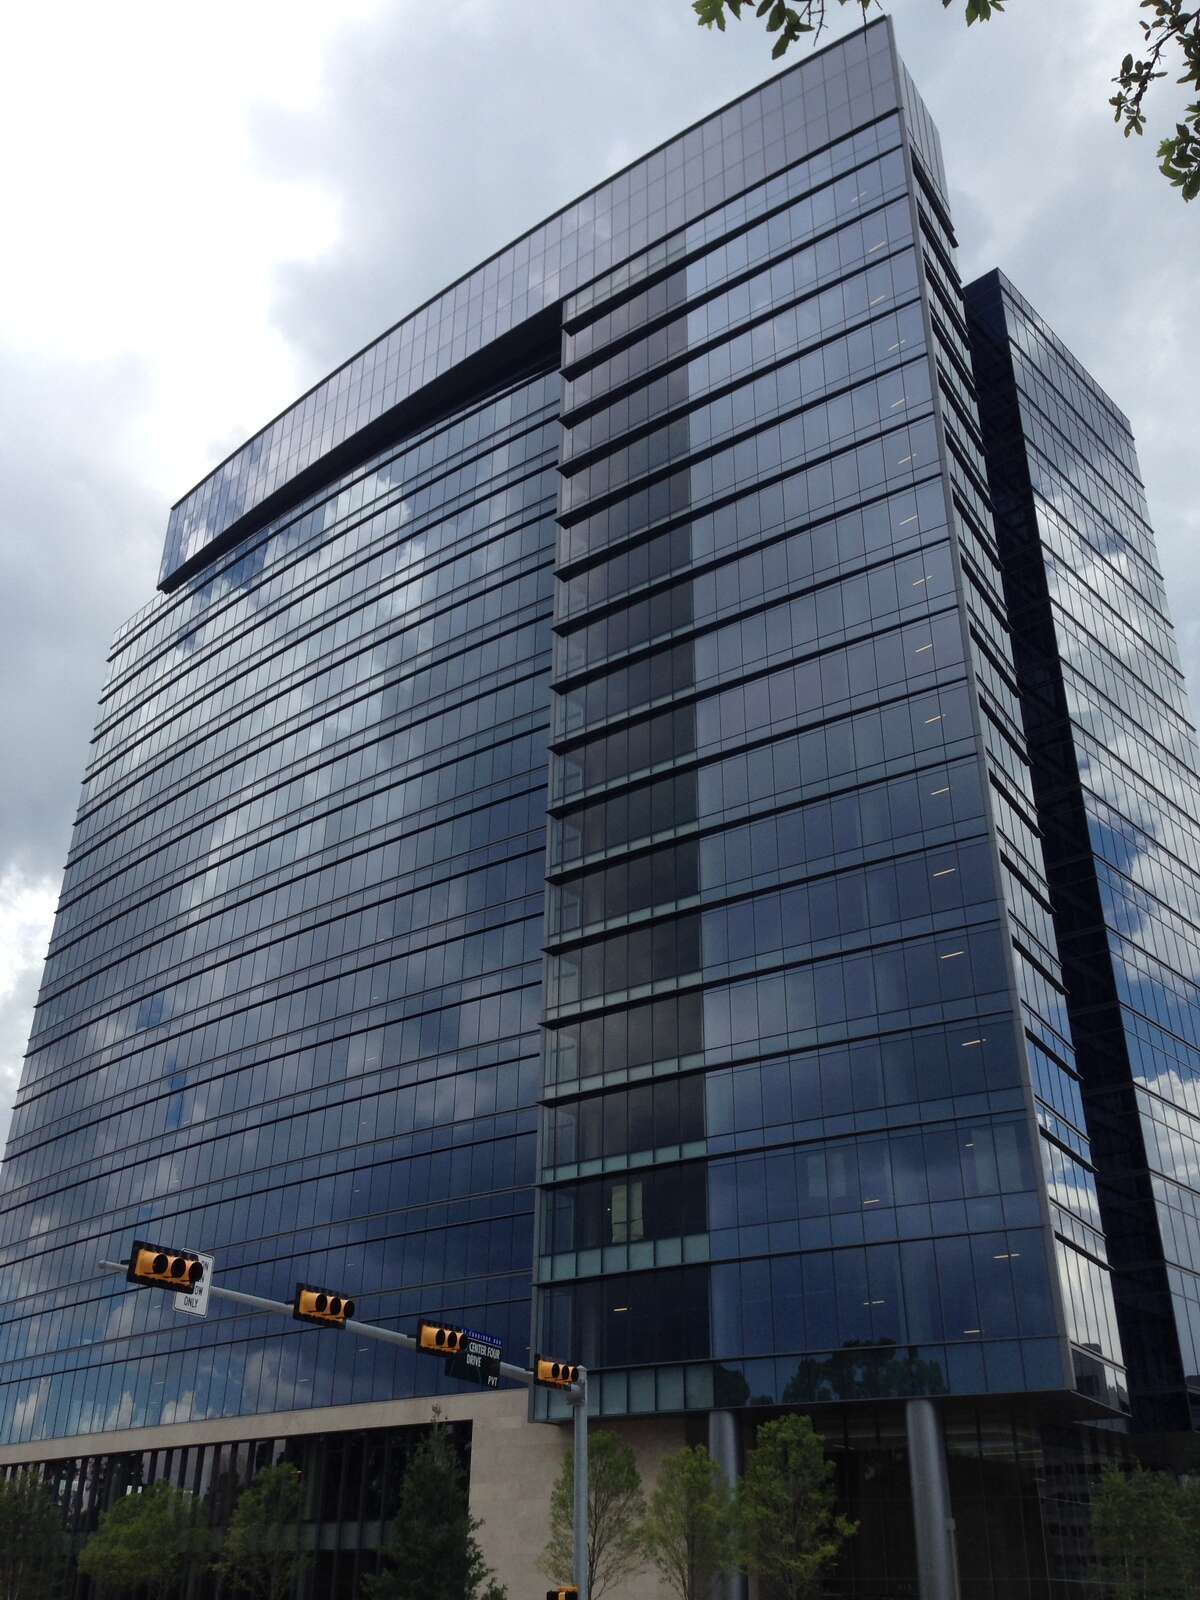 Energy Center Five, a new office building at 915 N. Eldridge Parkway, attained LEED Gold for core and shell.